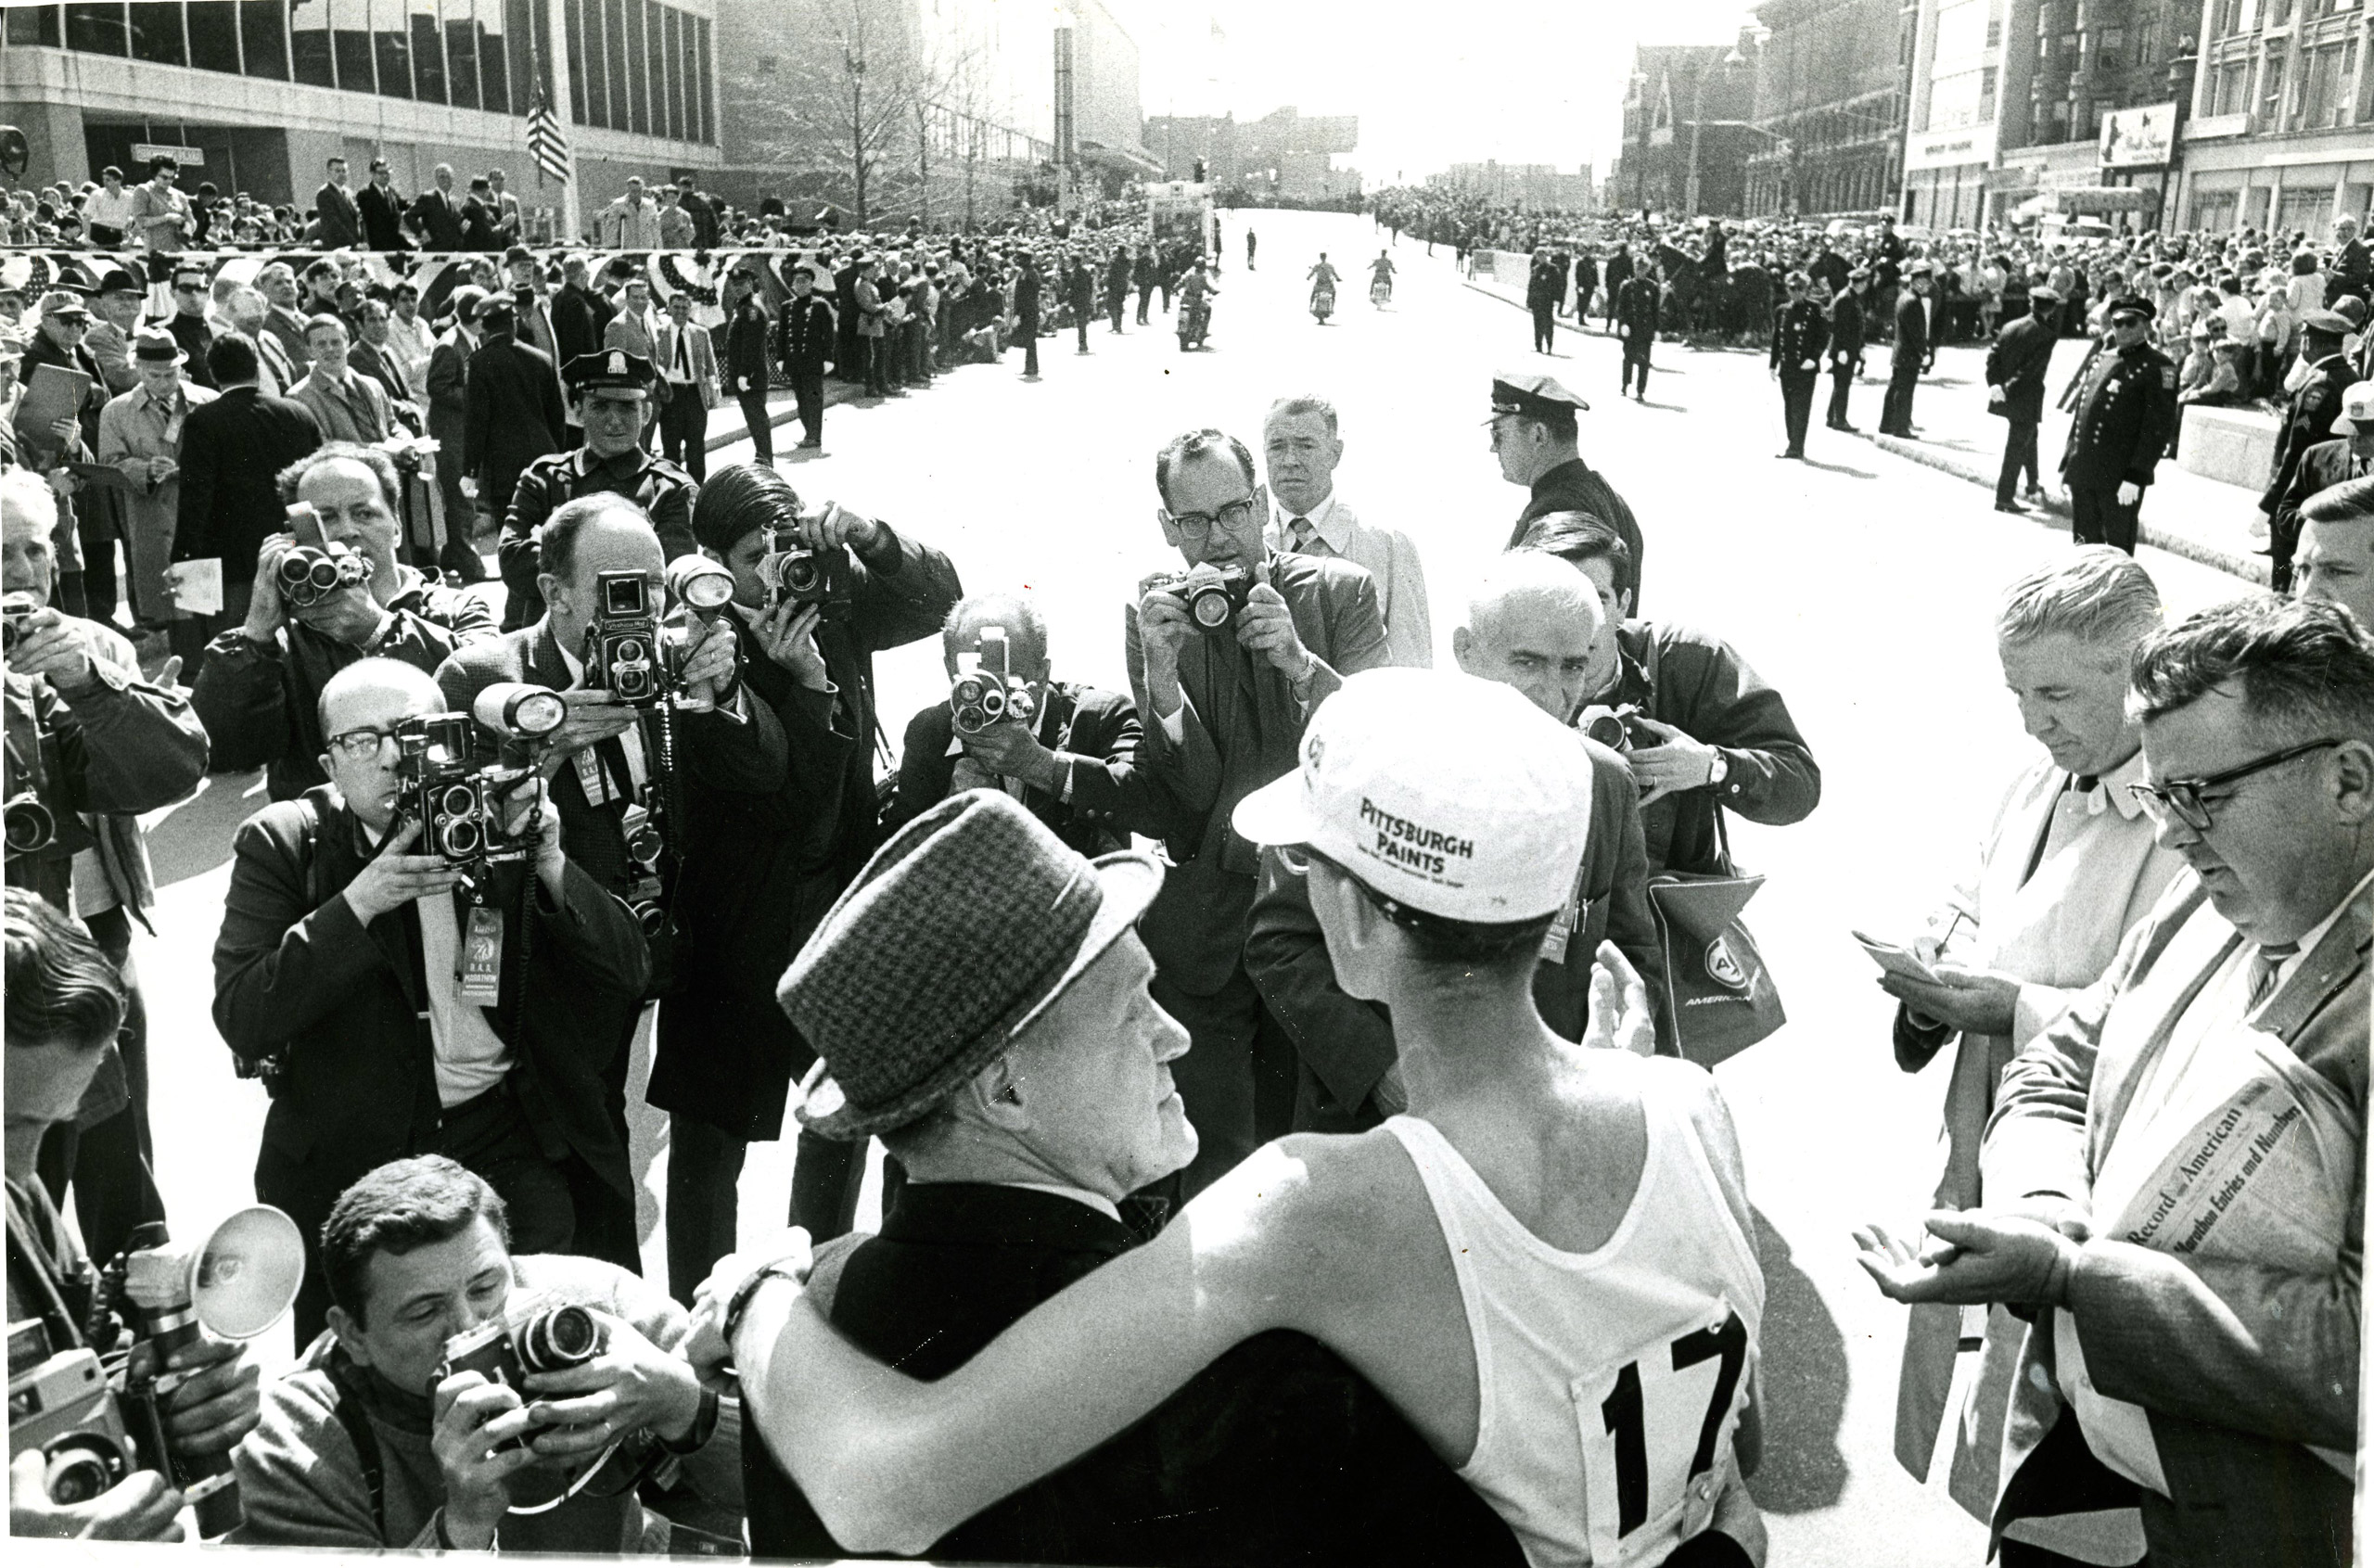 Amby Burfoot, right, and Jock Semple at the finish line of the Boston Marathon, April 19, 1968.